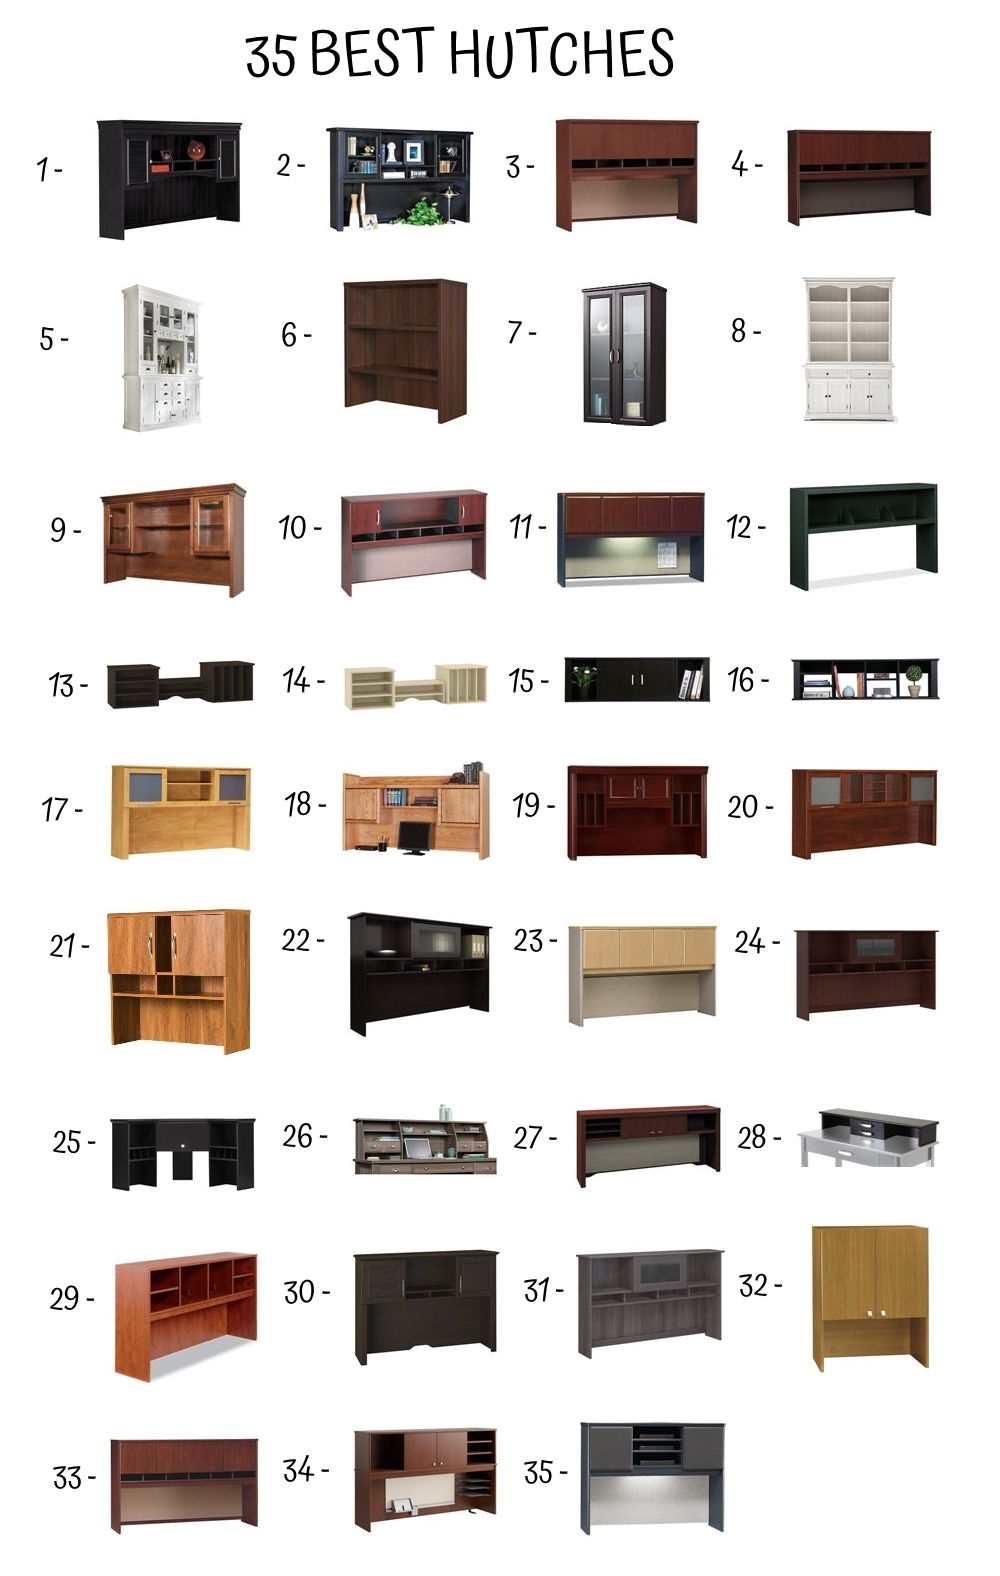 35 Best Hutches